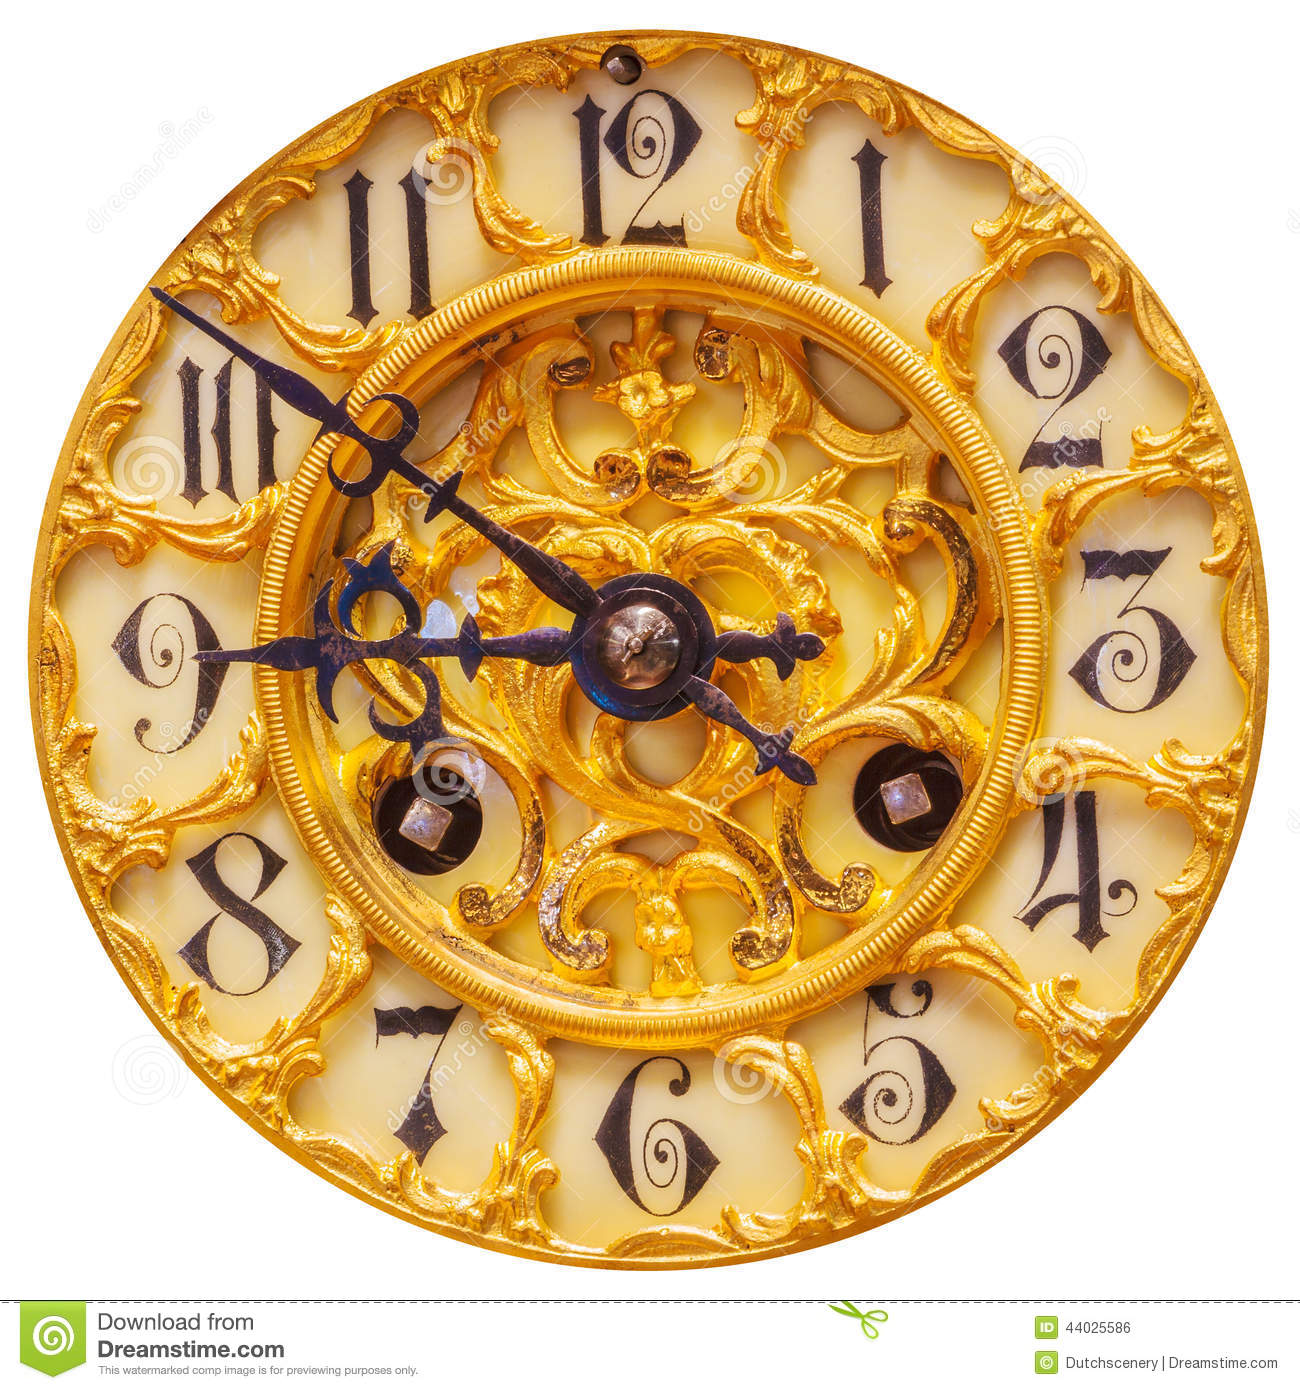 Rich decorated golden clock face isolated on white stock photo rich decorated golden clock face isolated on white gumiabroncs